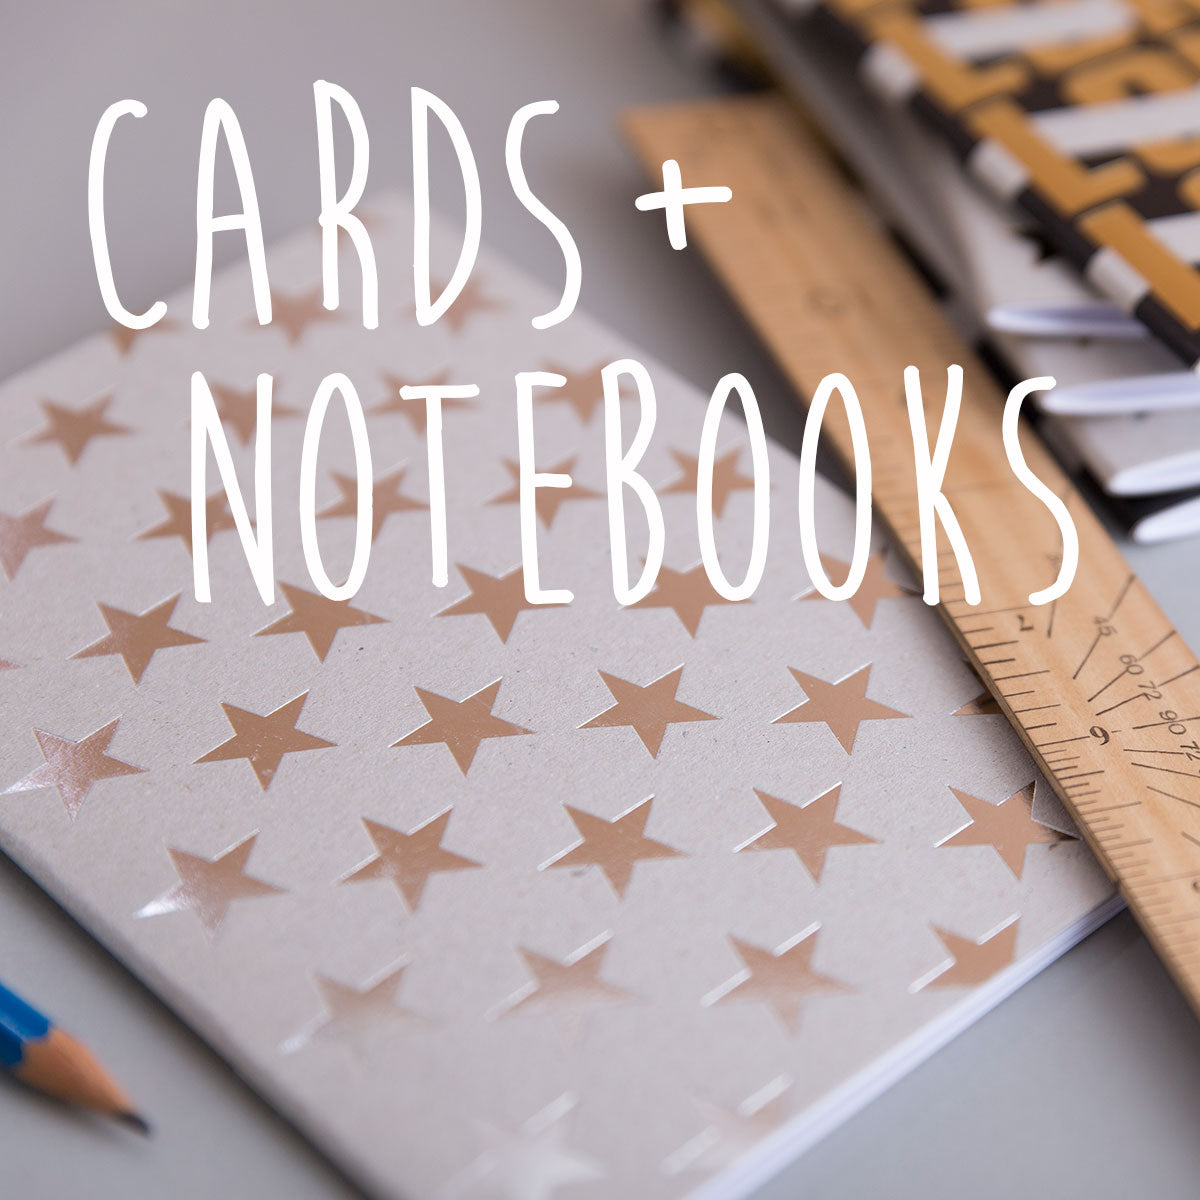 Cards and Notebooks